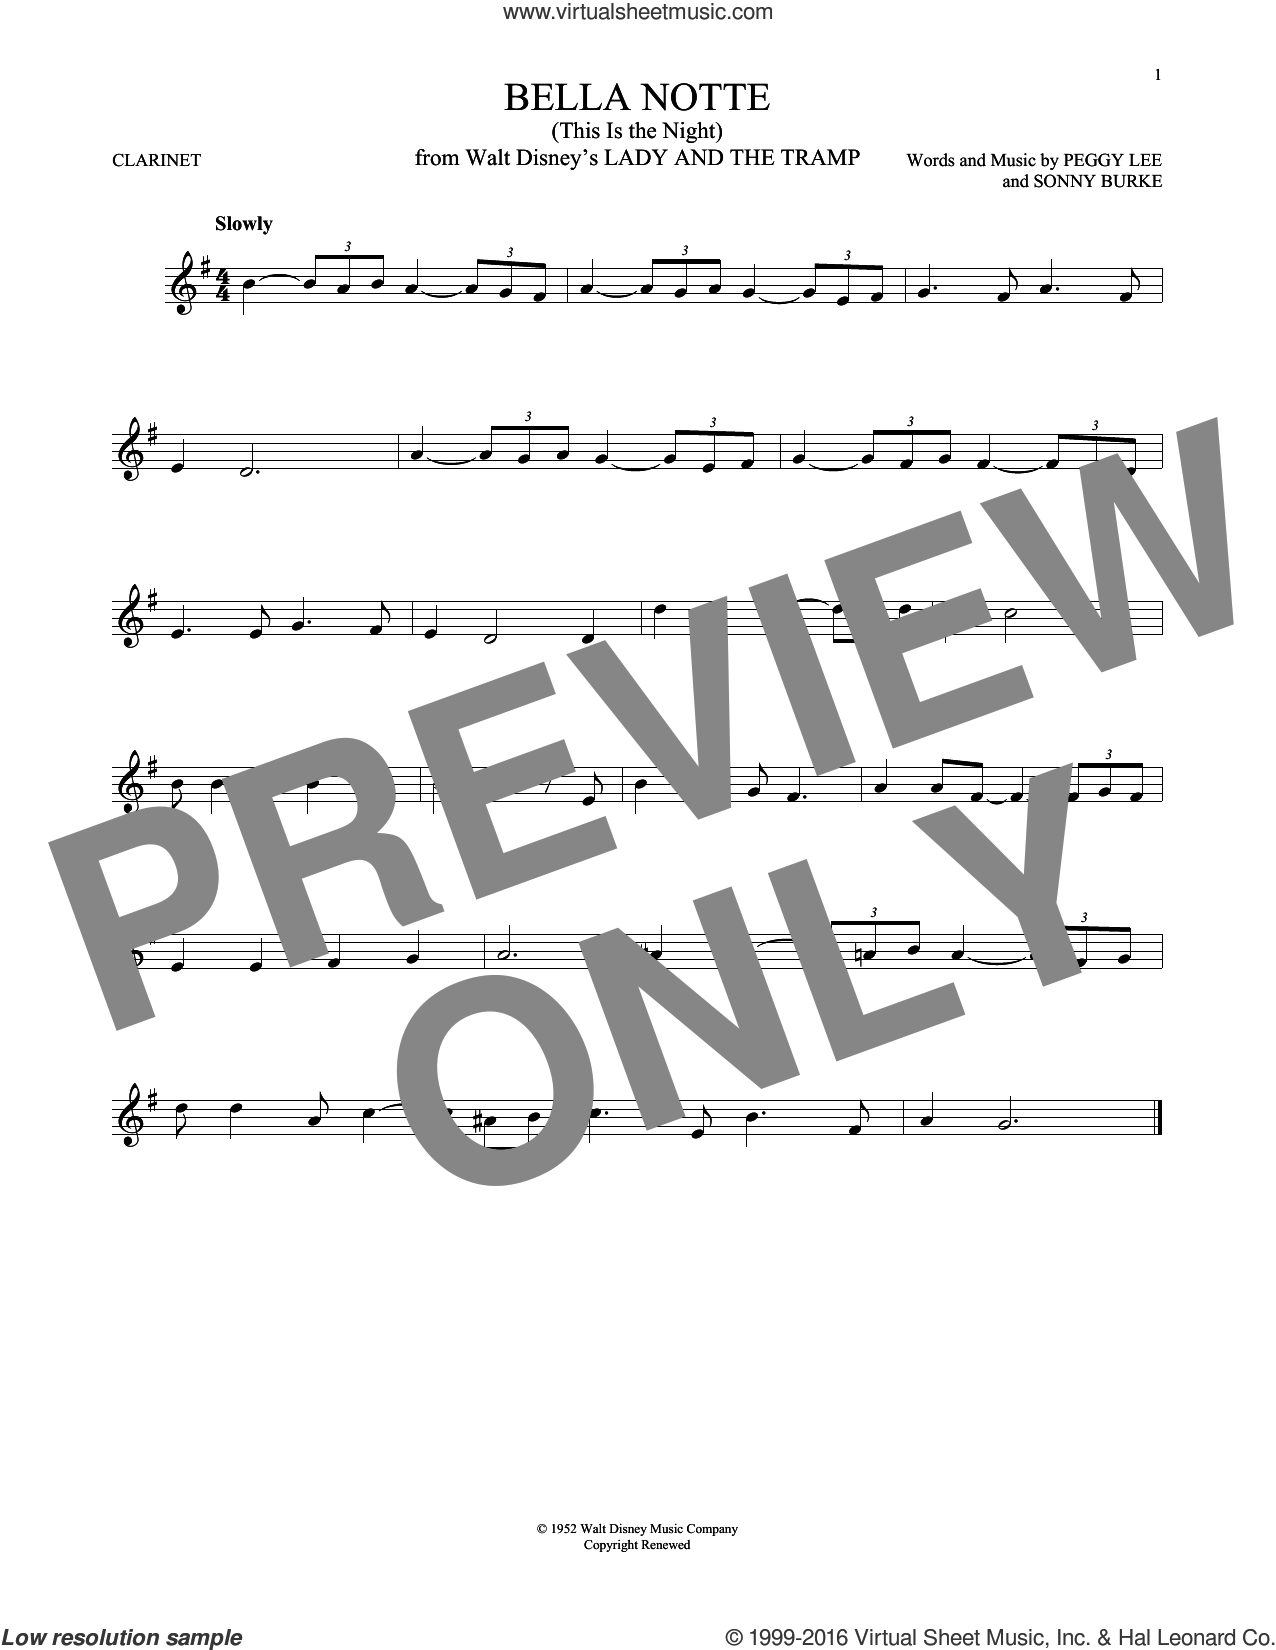 Bella Notte (from Lady And The Tramp) sheet music for clarinet solo by Peggy Lee, Peggy Lee & Sonny Burke and Sonny Burke, intermediate skill level